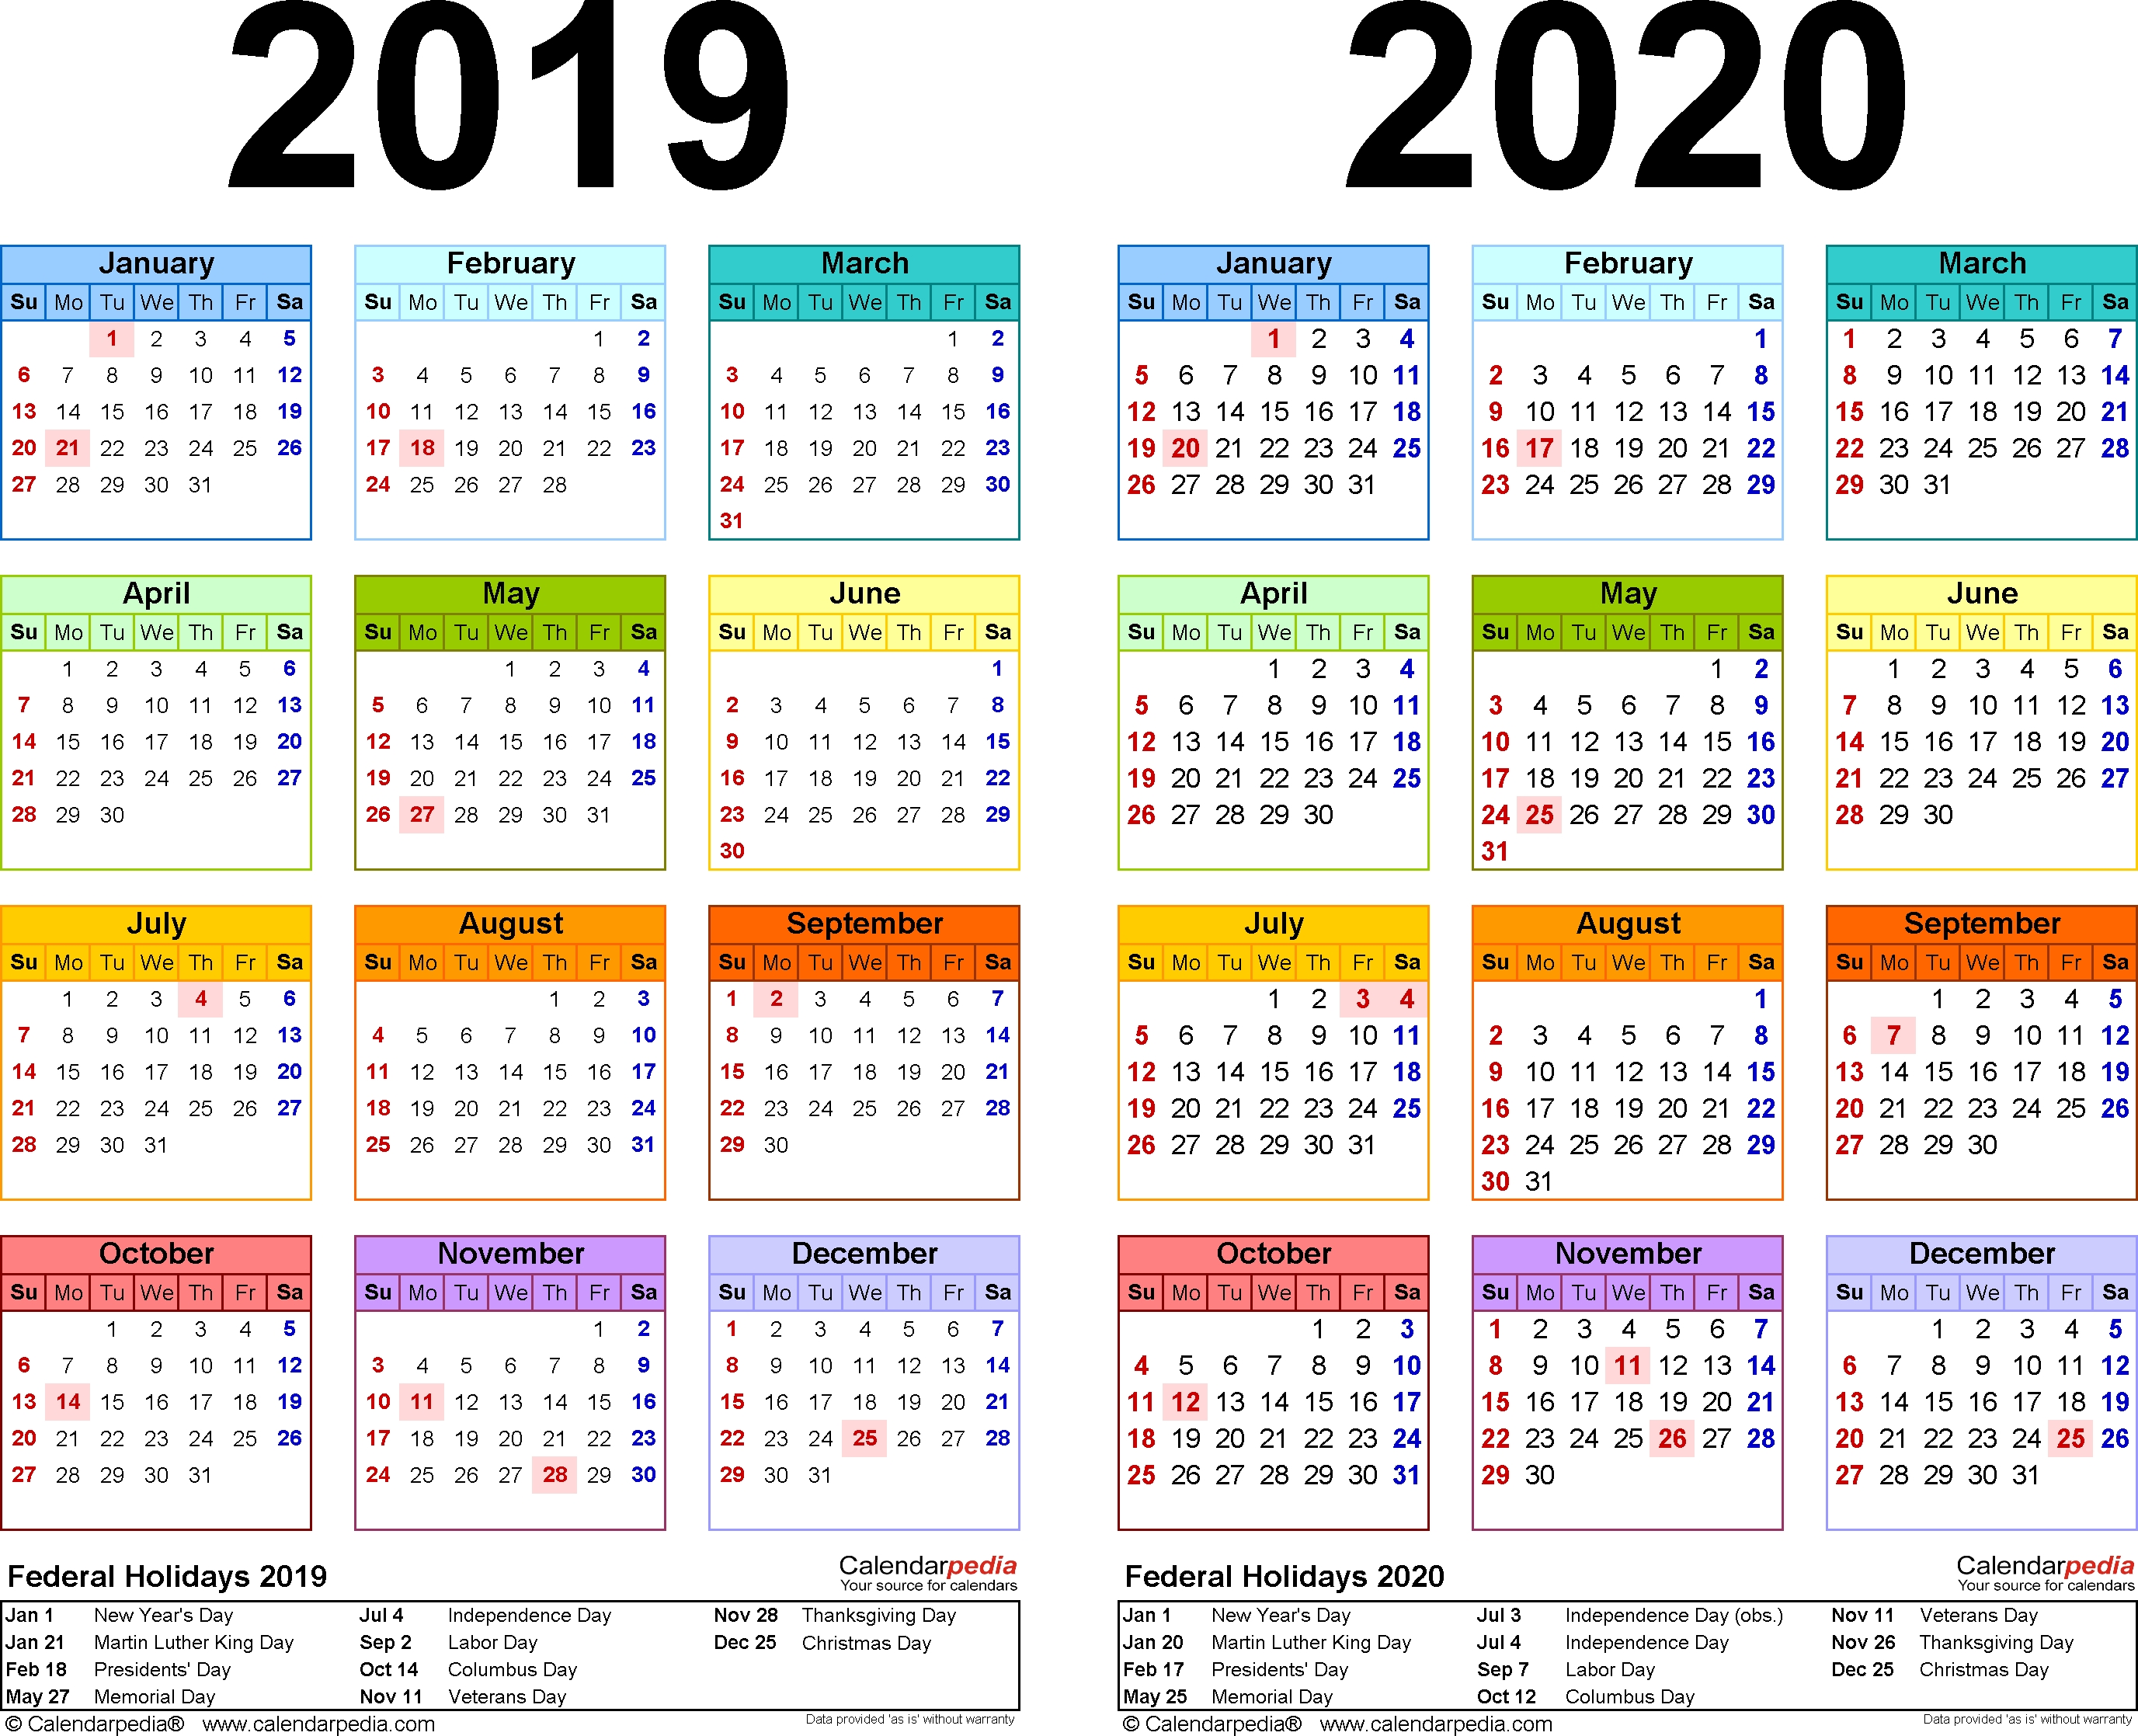 2019-2020 Calendar - Free Printable Two-Year Pdf Calendars  +2020 Calender Month By Month